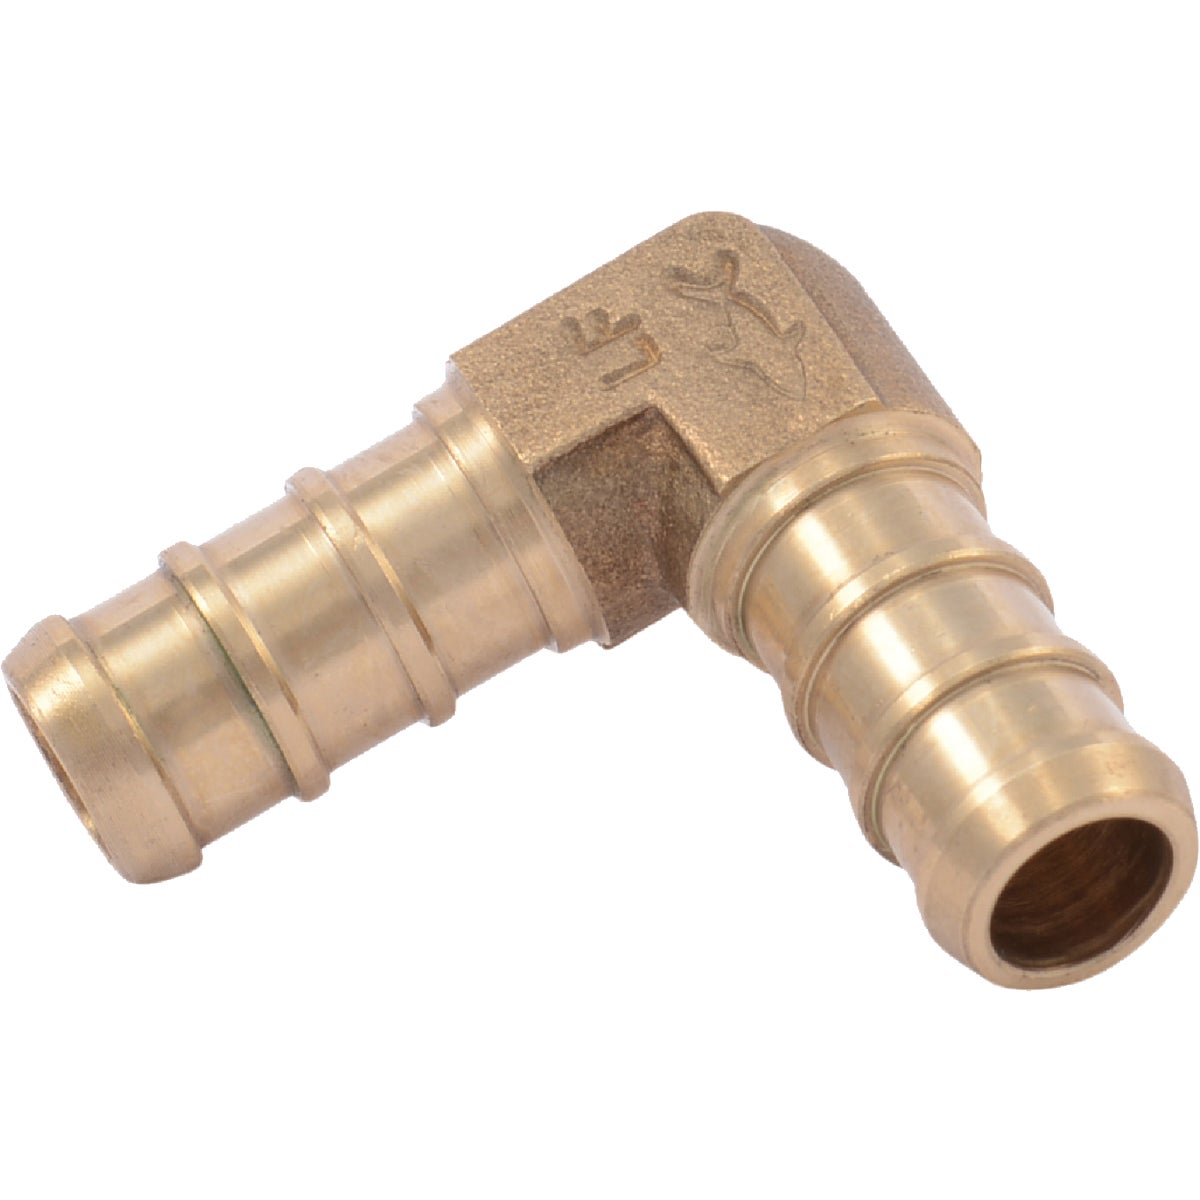 3/8CFX3/8CF BRASS ELBOW - LF P-320 by Watts Regulator Co